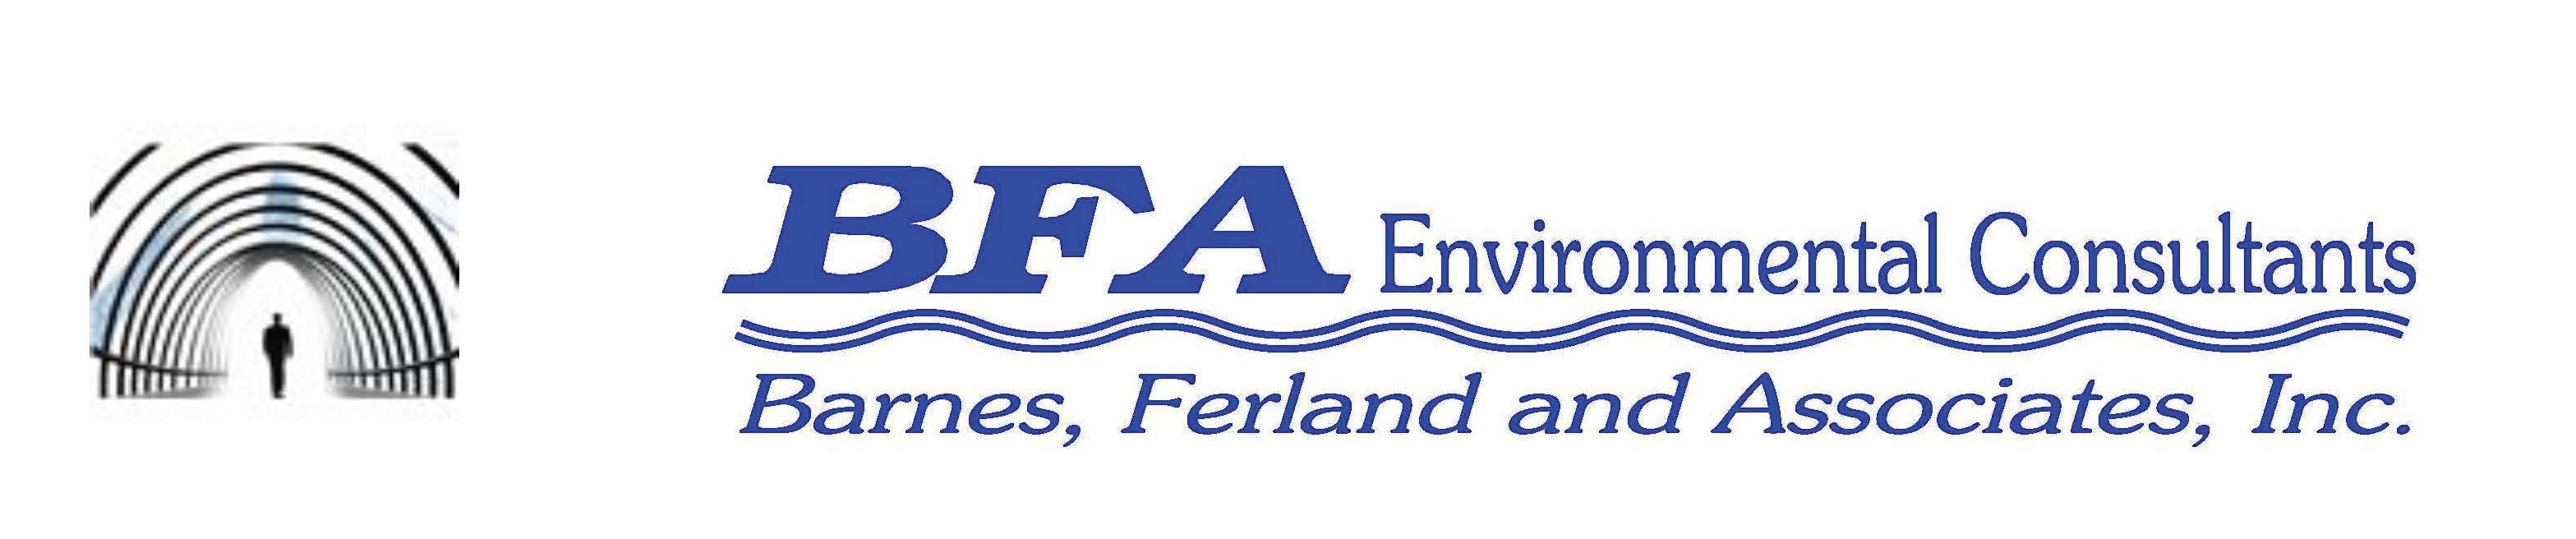 Vedi Inc Partners With Bfa Environmental To Improve Diversity And Efficiency In Long Island